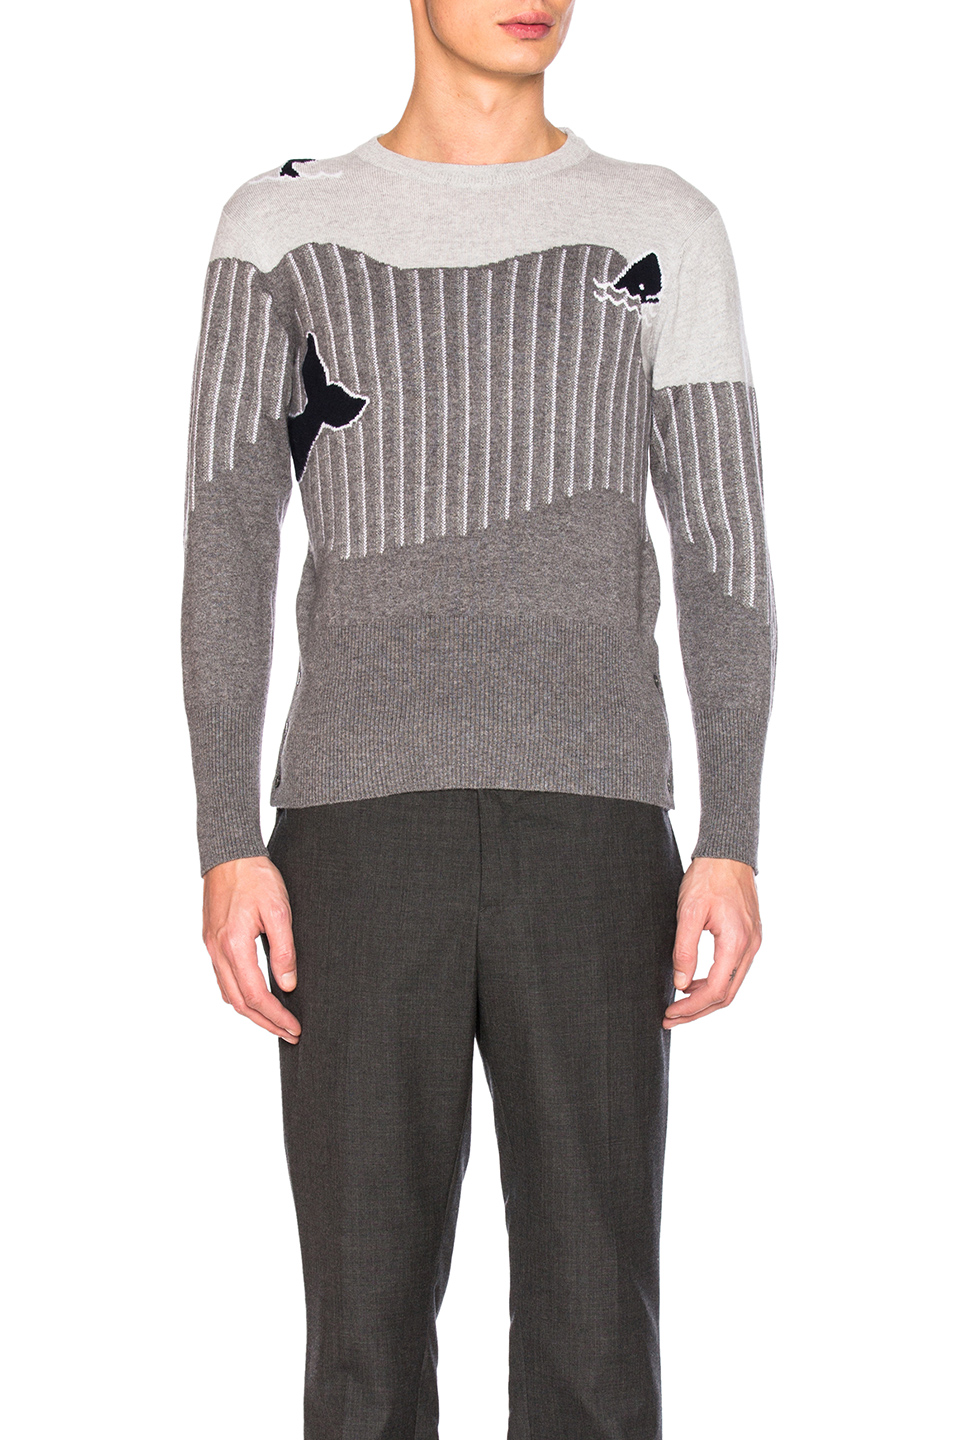 Thom Browne Sea Animal Cashmere Intarsia Sweater in Gray,Stripes